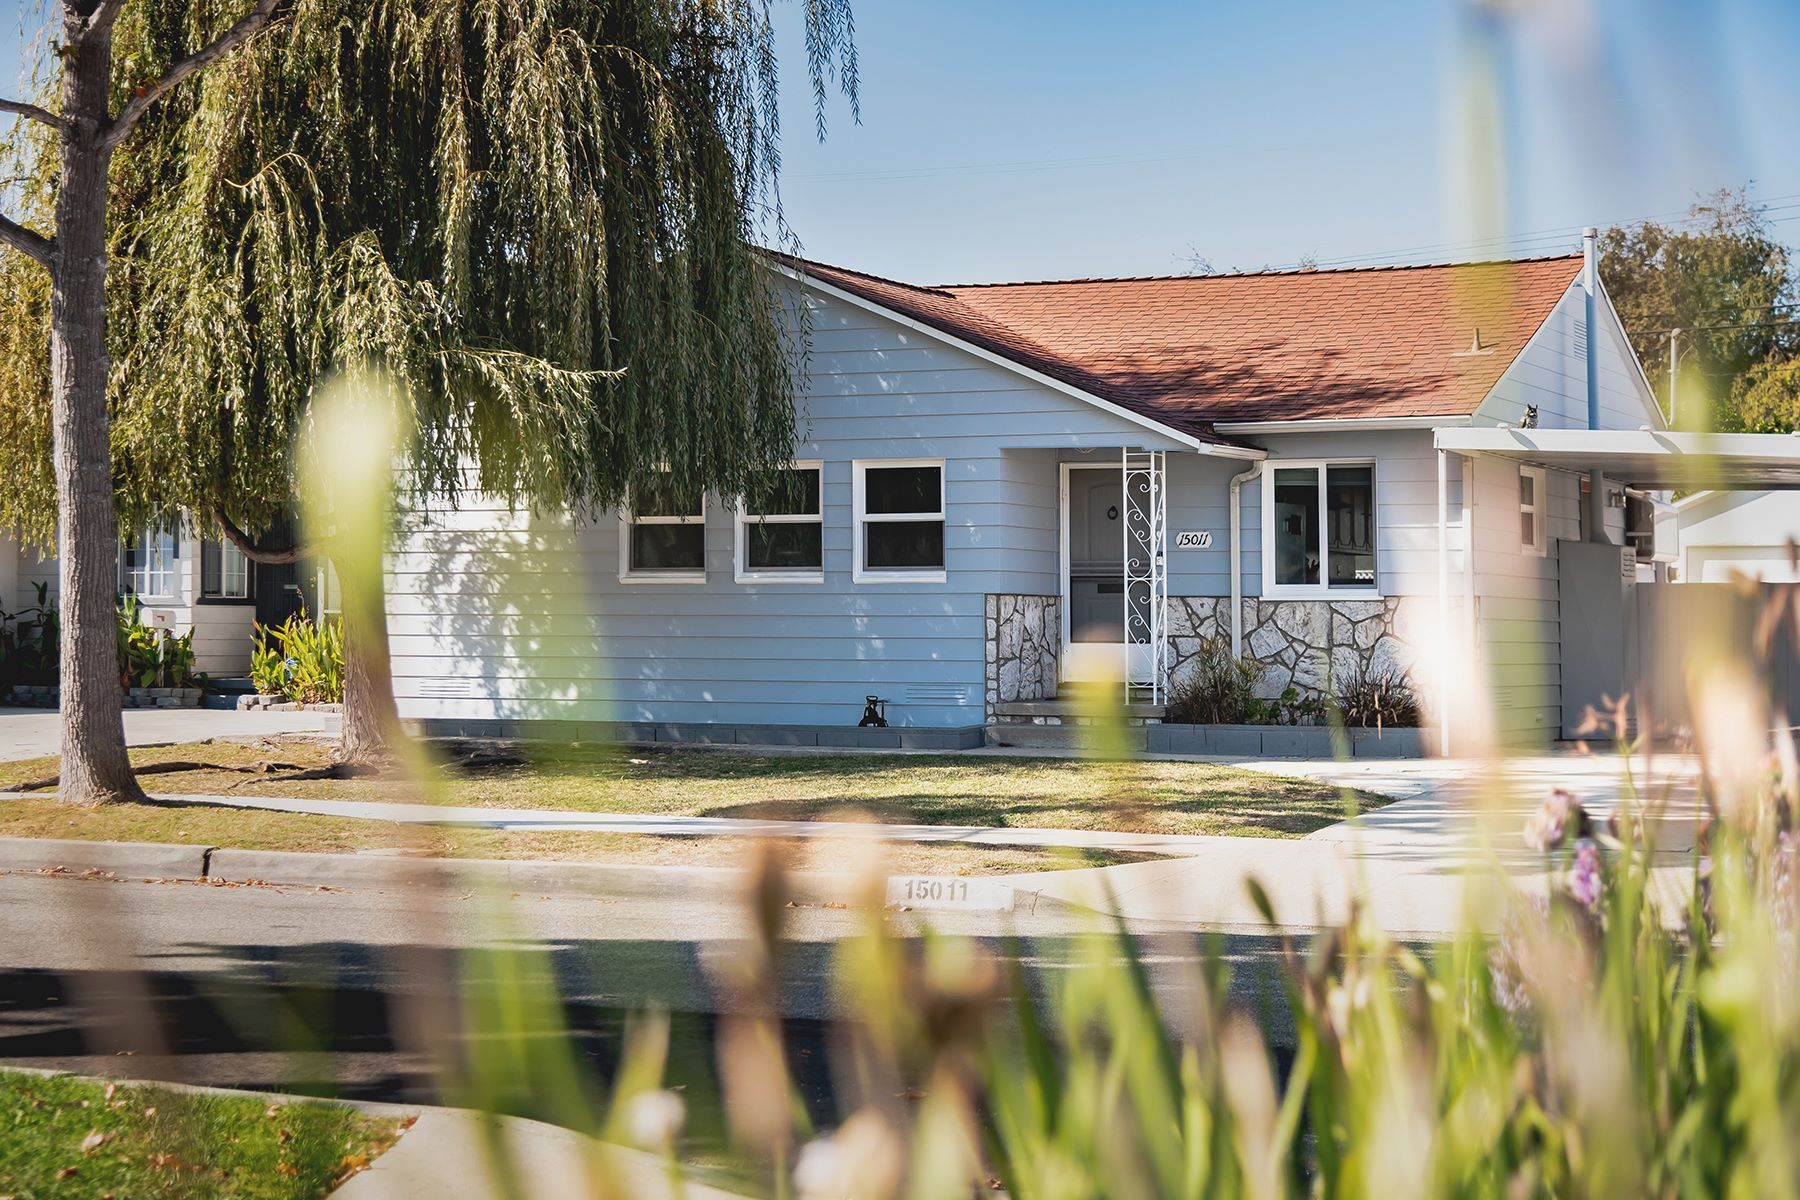 Single Family Homes for Sale at 15011 Cordary Avenue, Hawthorne, CA 90250 15011 Cordary Avenue Hawthorne, California 90250 United States